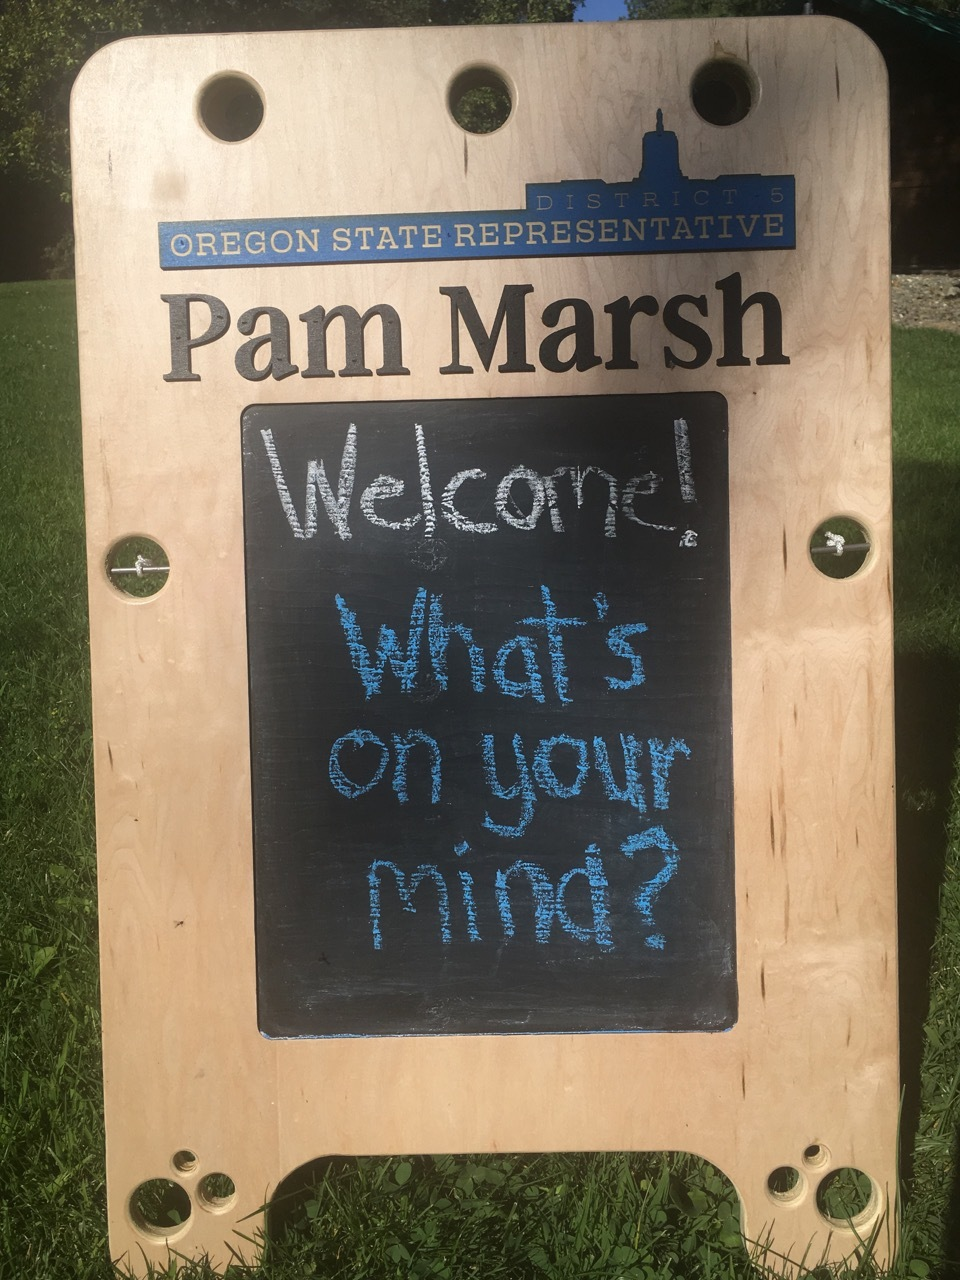 Rep Marsh sandwich board, handcrafted at Talent Maker City